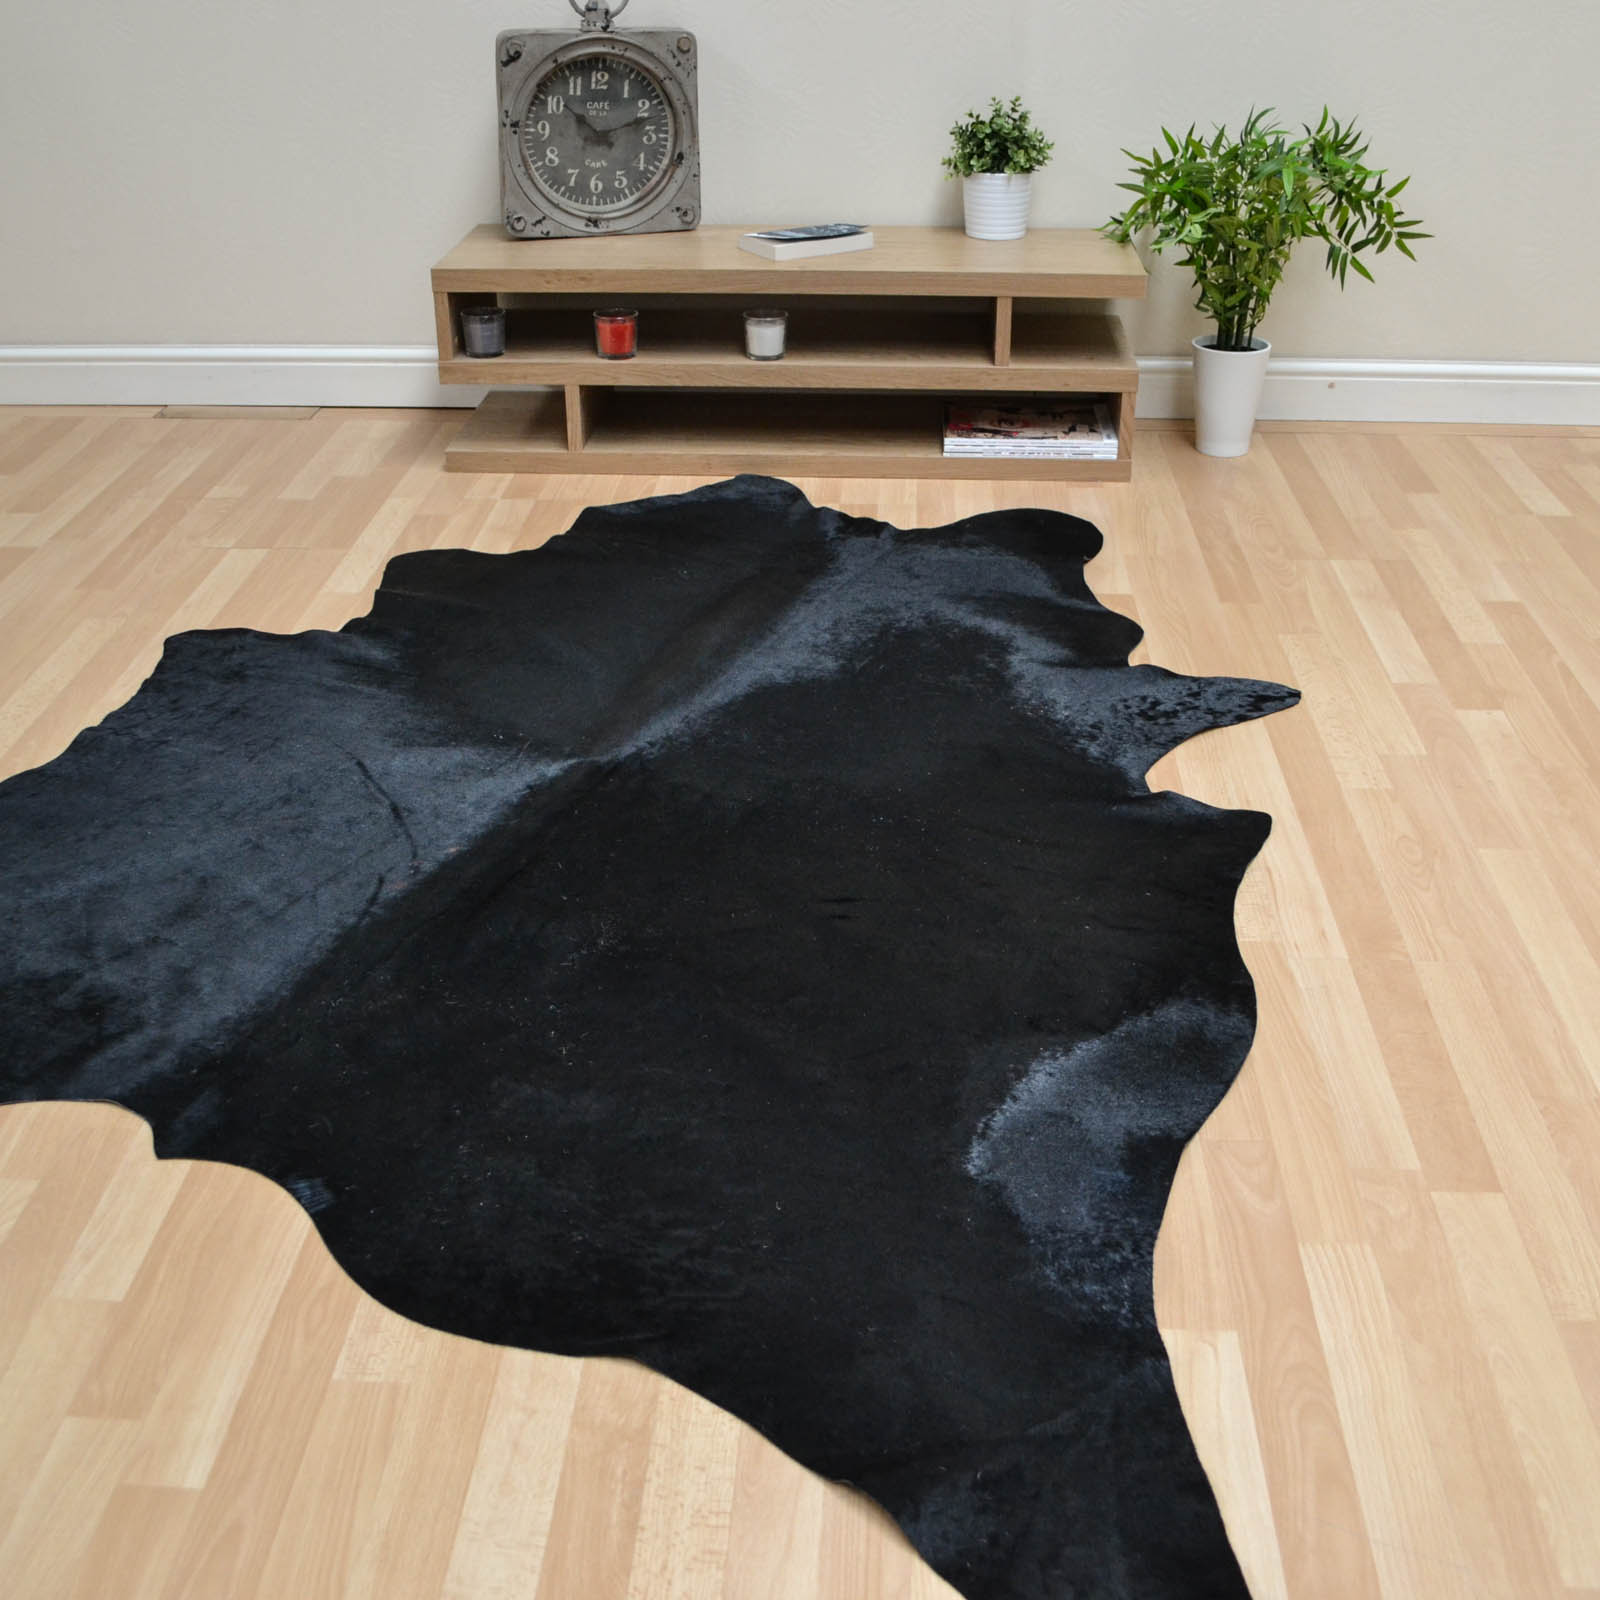 Coloured Cowhide Rugs Free Delivery at The Rug Seller